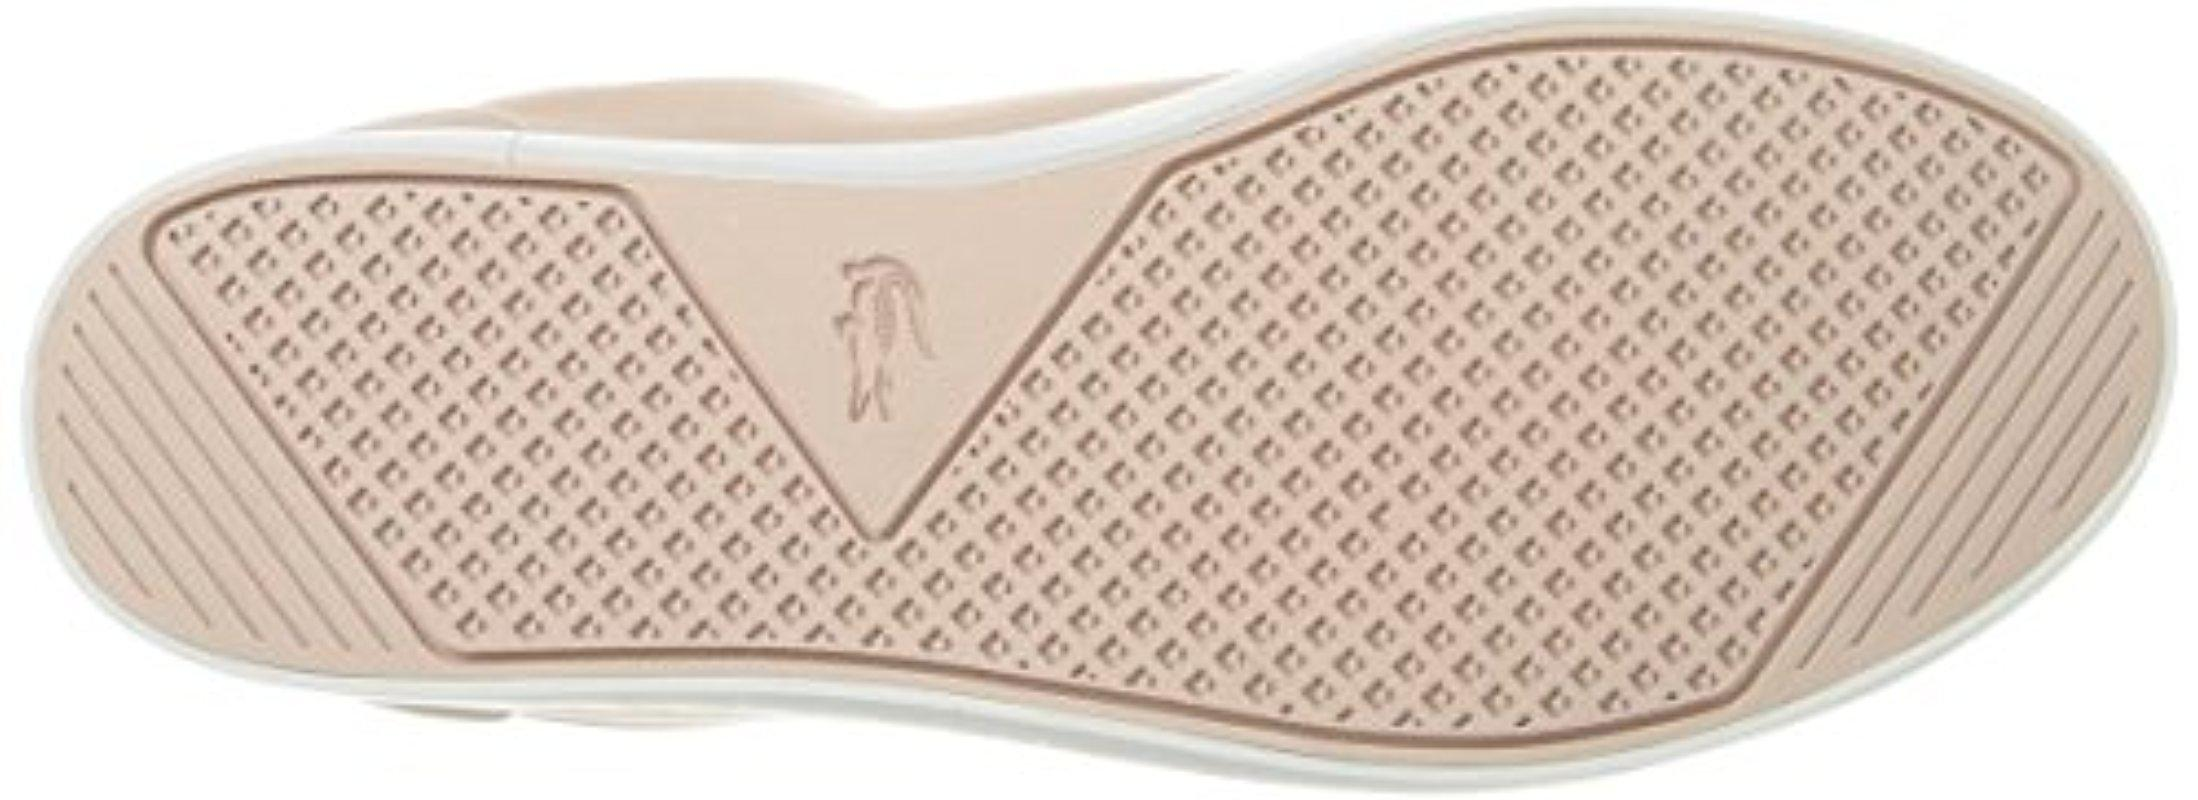 2e8d98670525e Lyst - Lacoste Straightset 316 1 Caw Fashion Sneaker in Pink